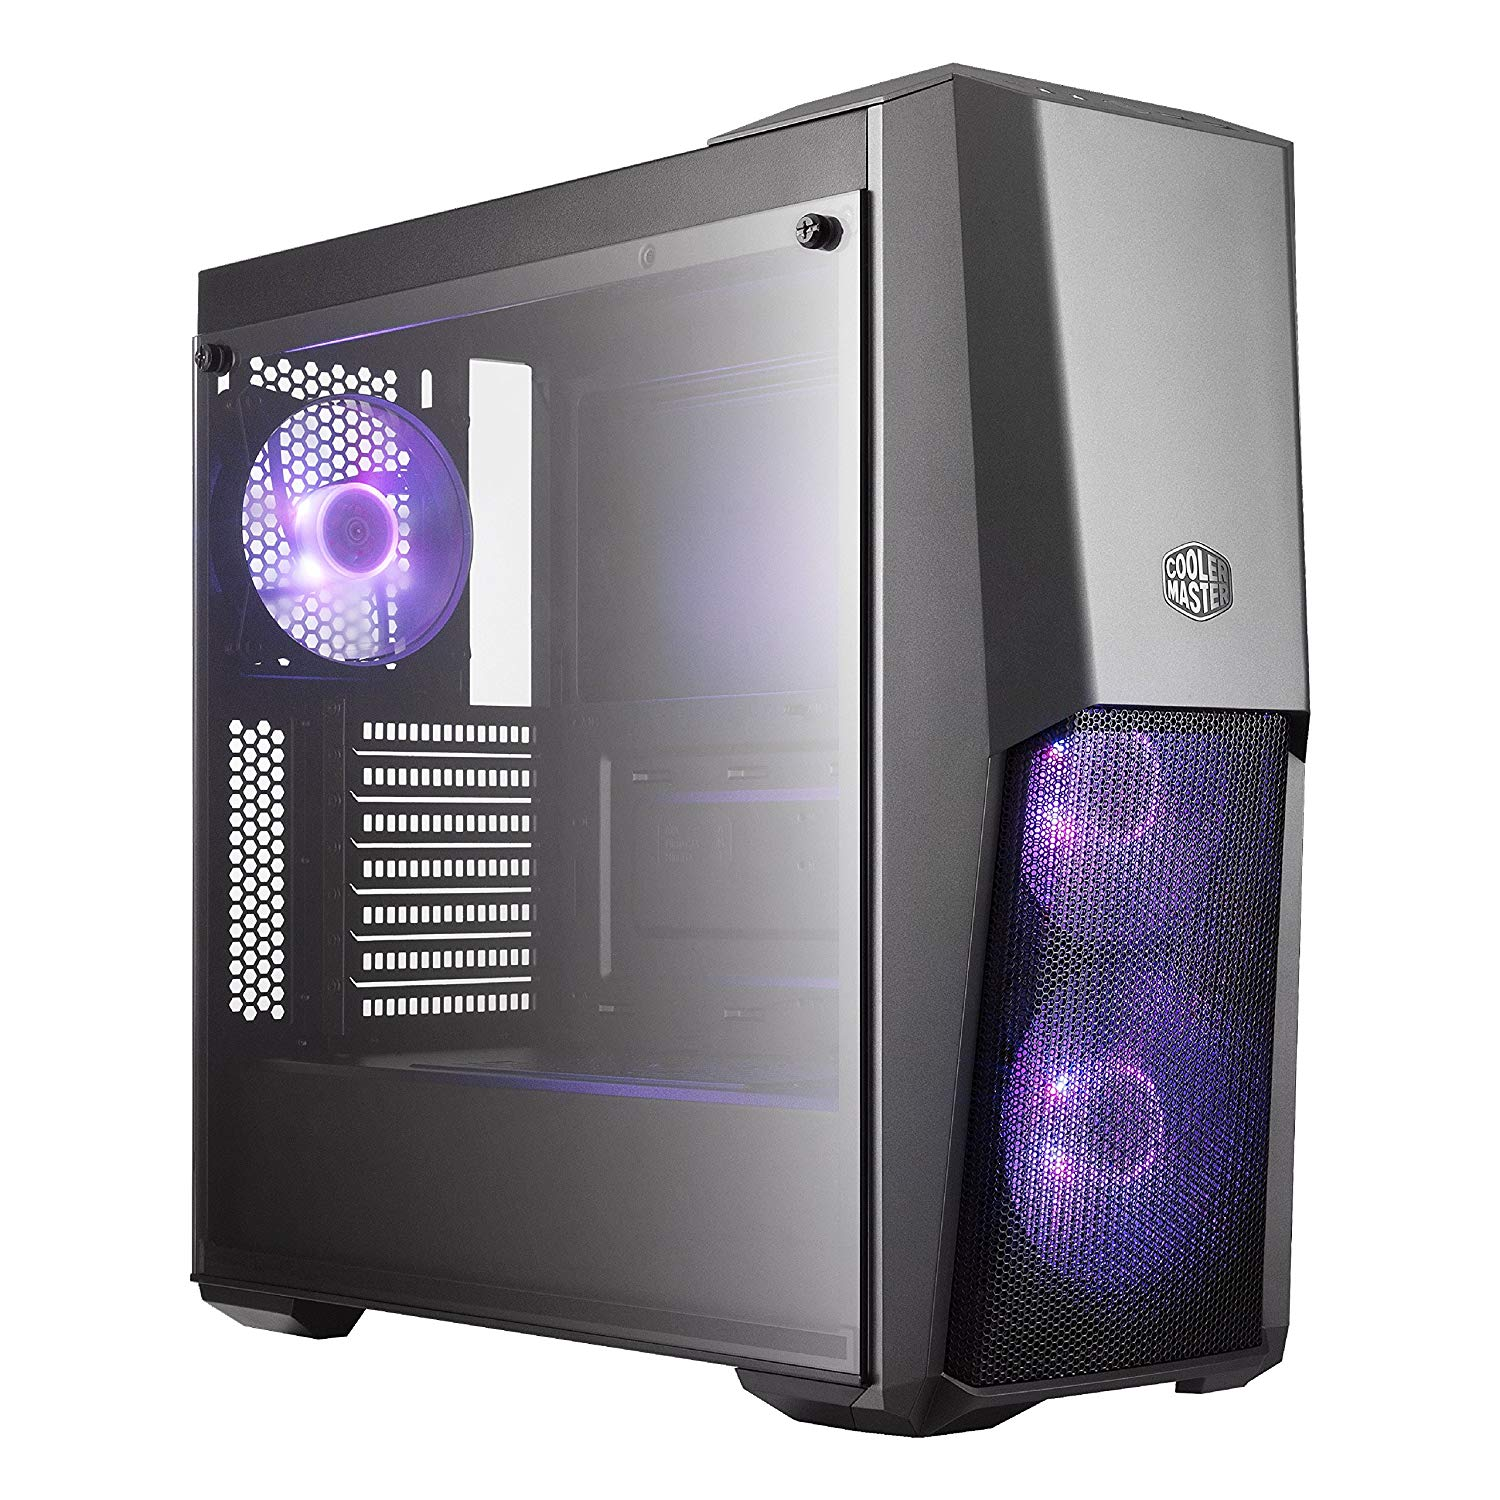 Cooler Master MasterBox Pro 5 ATX Mid Tower Black 3 RGB Fan Gaming Computer Case